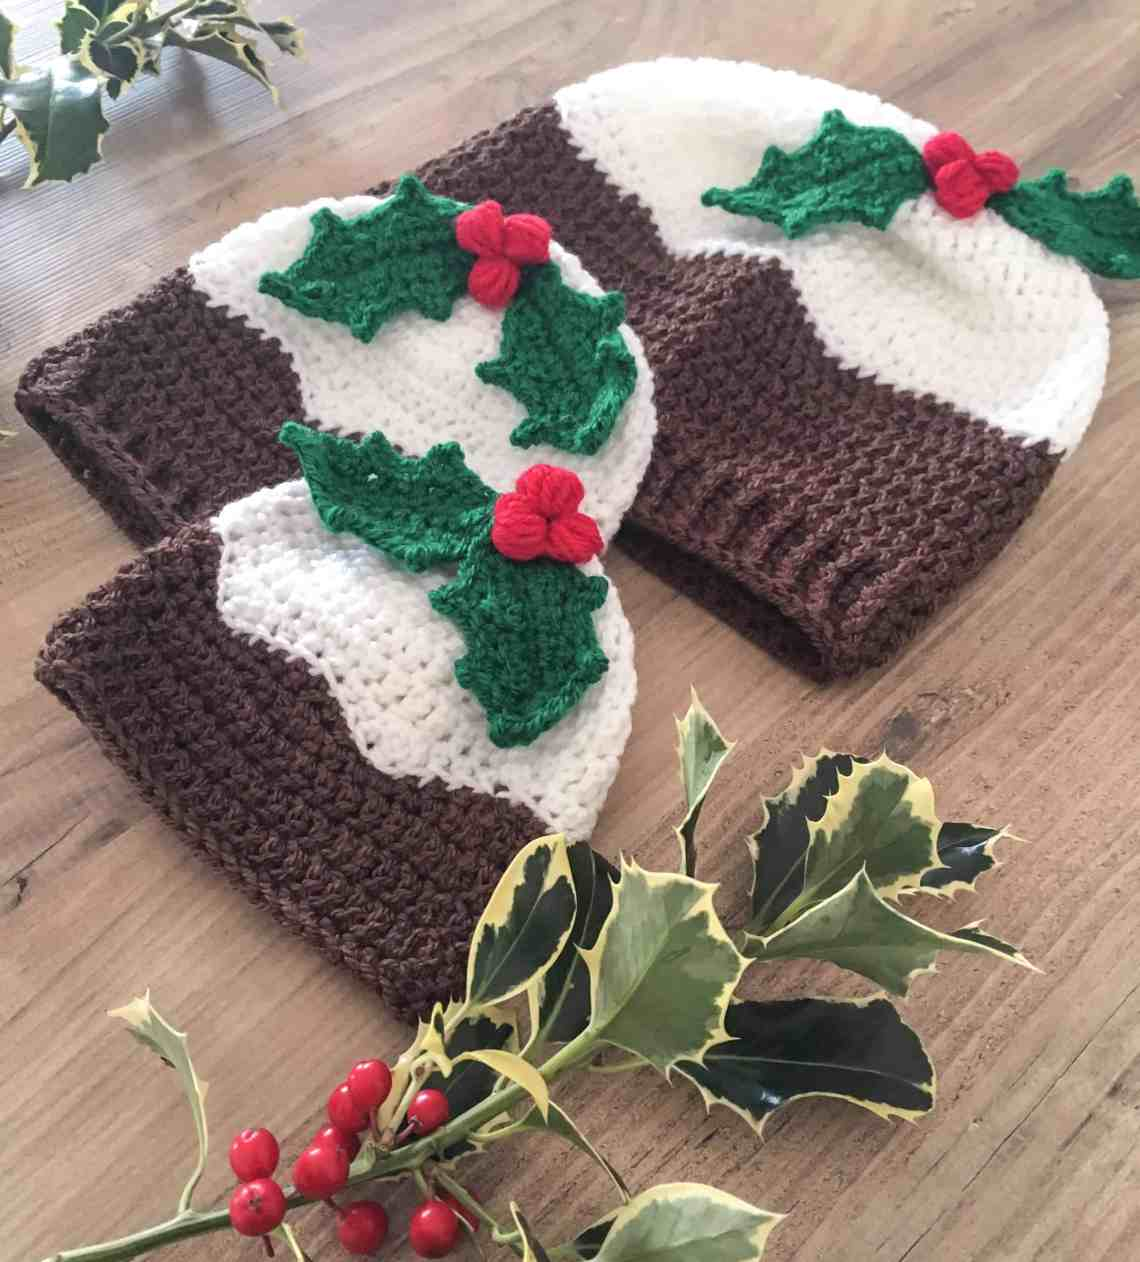 Dora's crochet christmas pudding hat with holly leaves and berries in multiple sizes